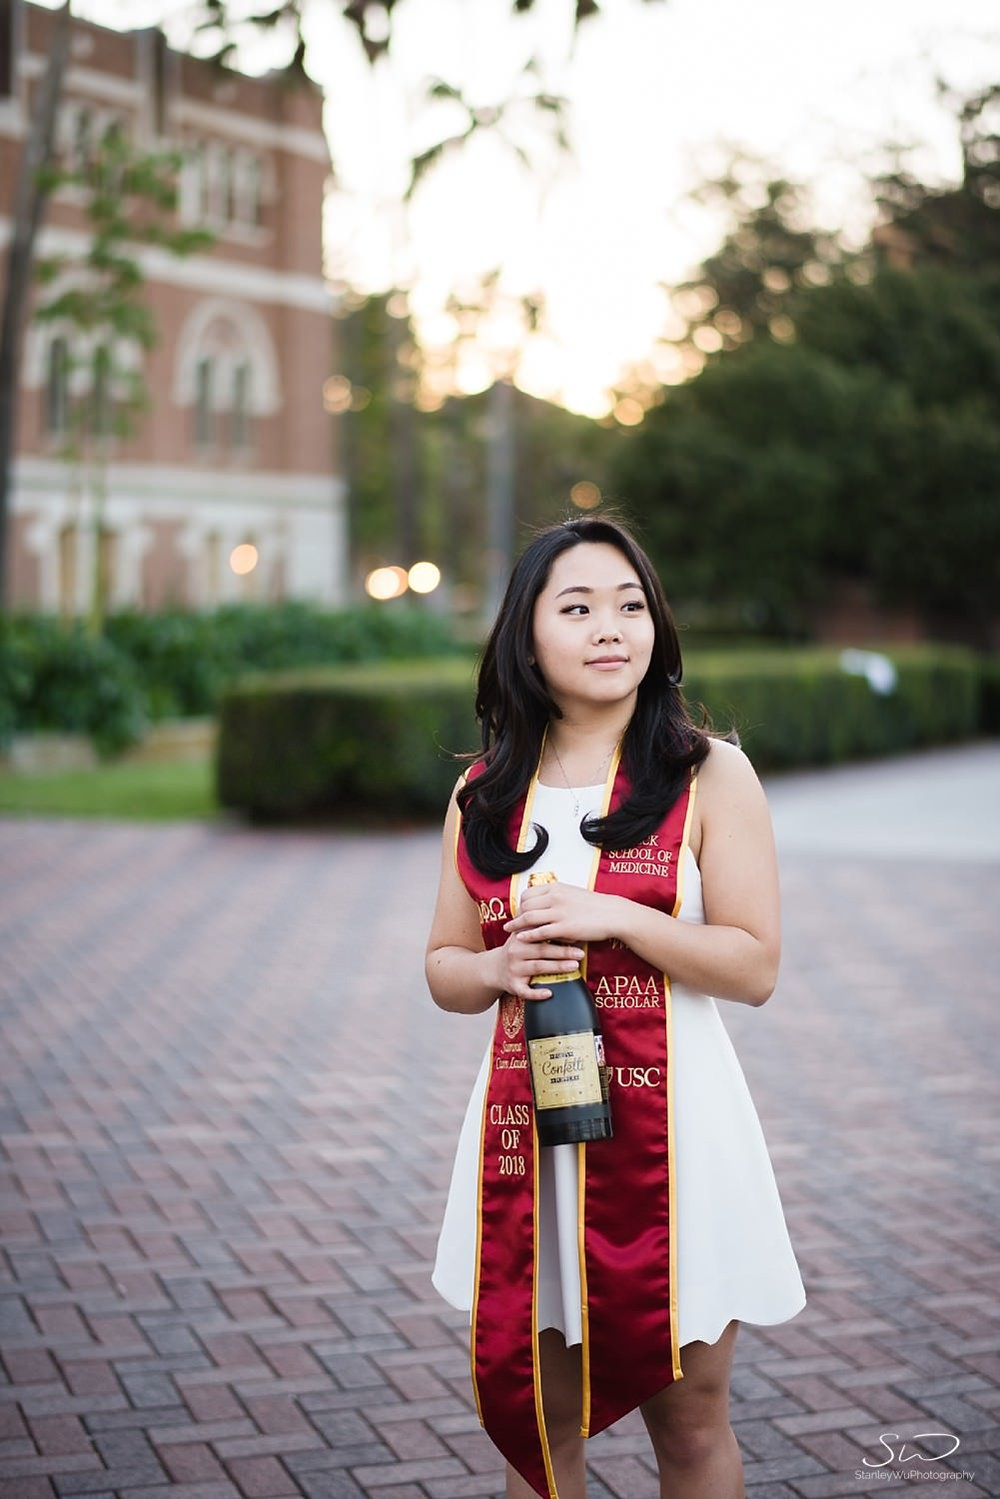 los-angeles-usc-graduation-senior-portraits_0080.jpg